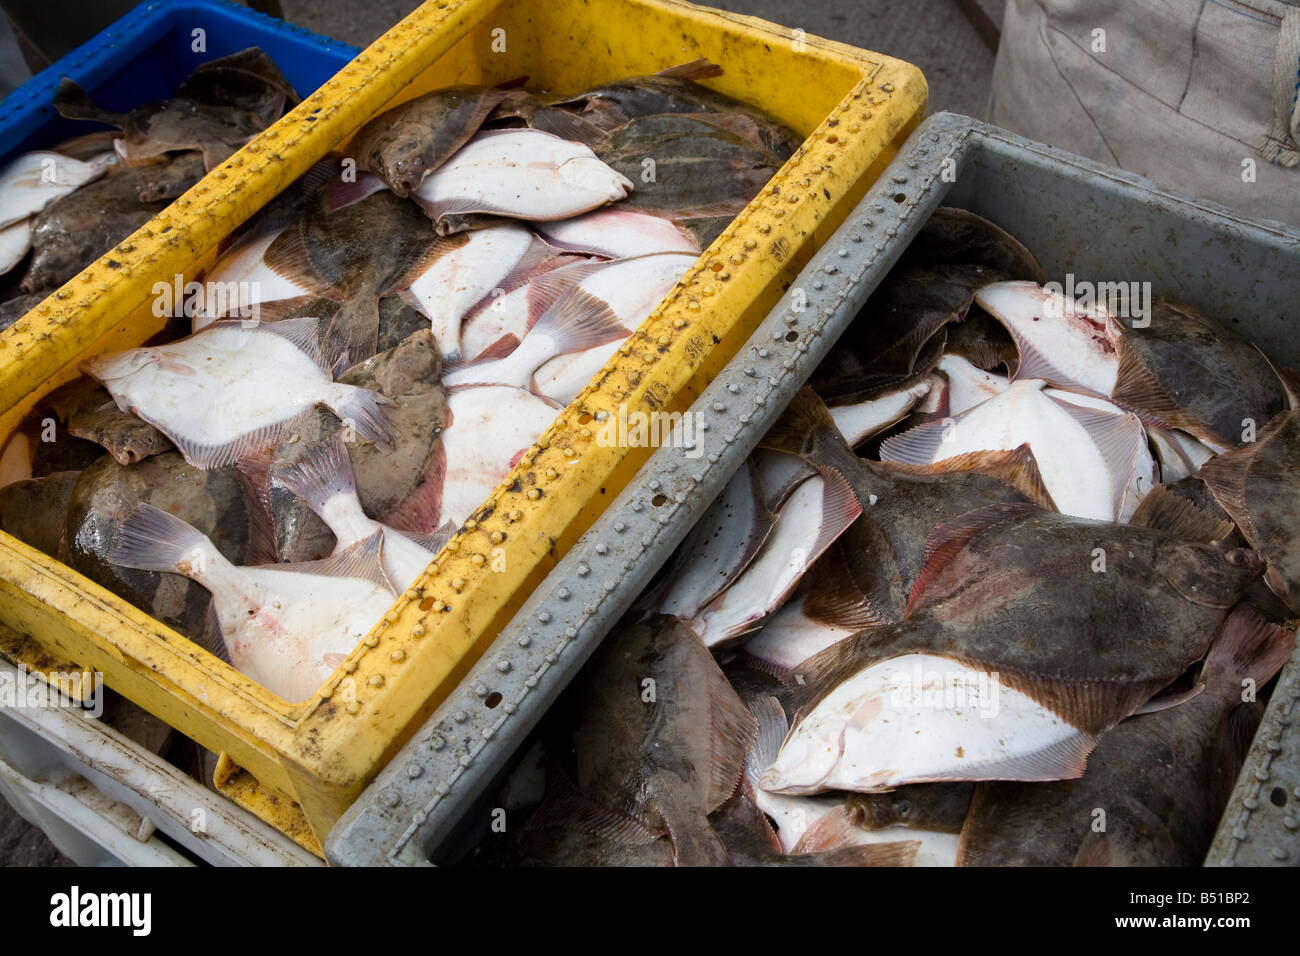 Fresh flatfish caught in the Baltic Sea brought ashore in Leba Poland - Stock Image